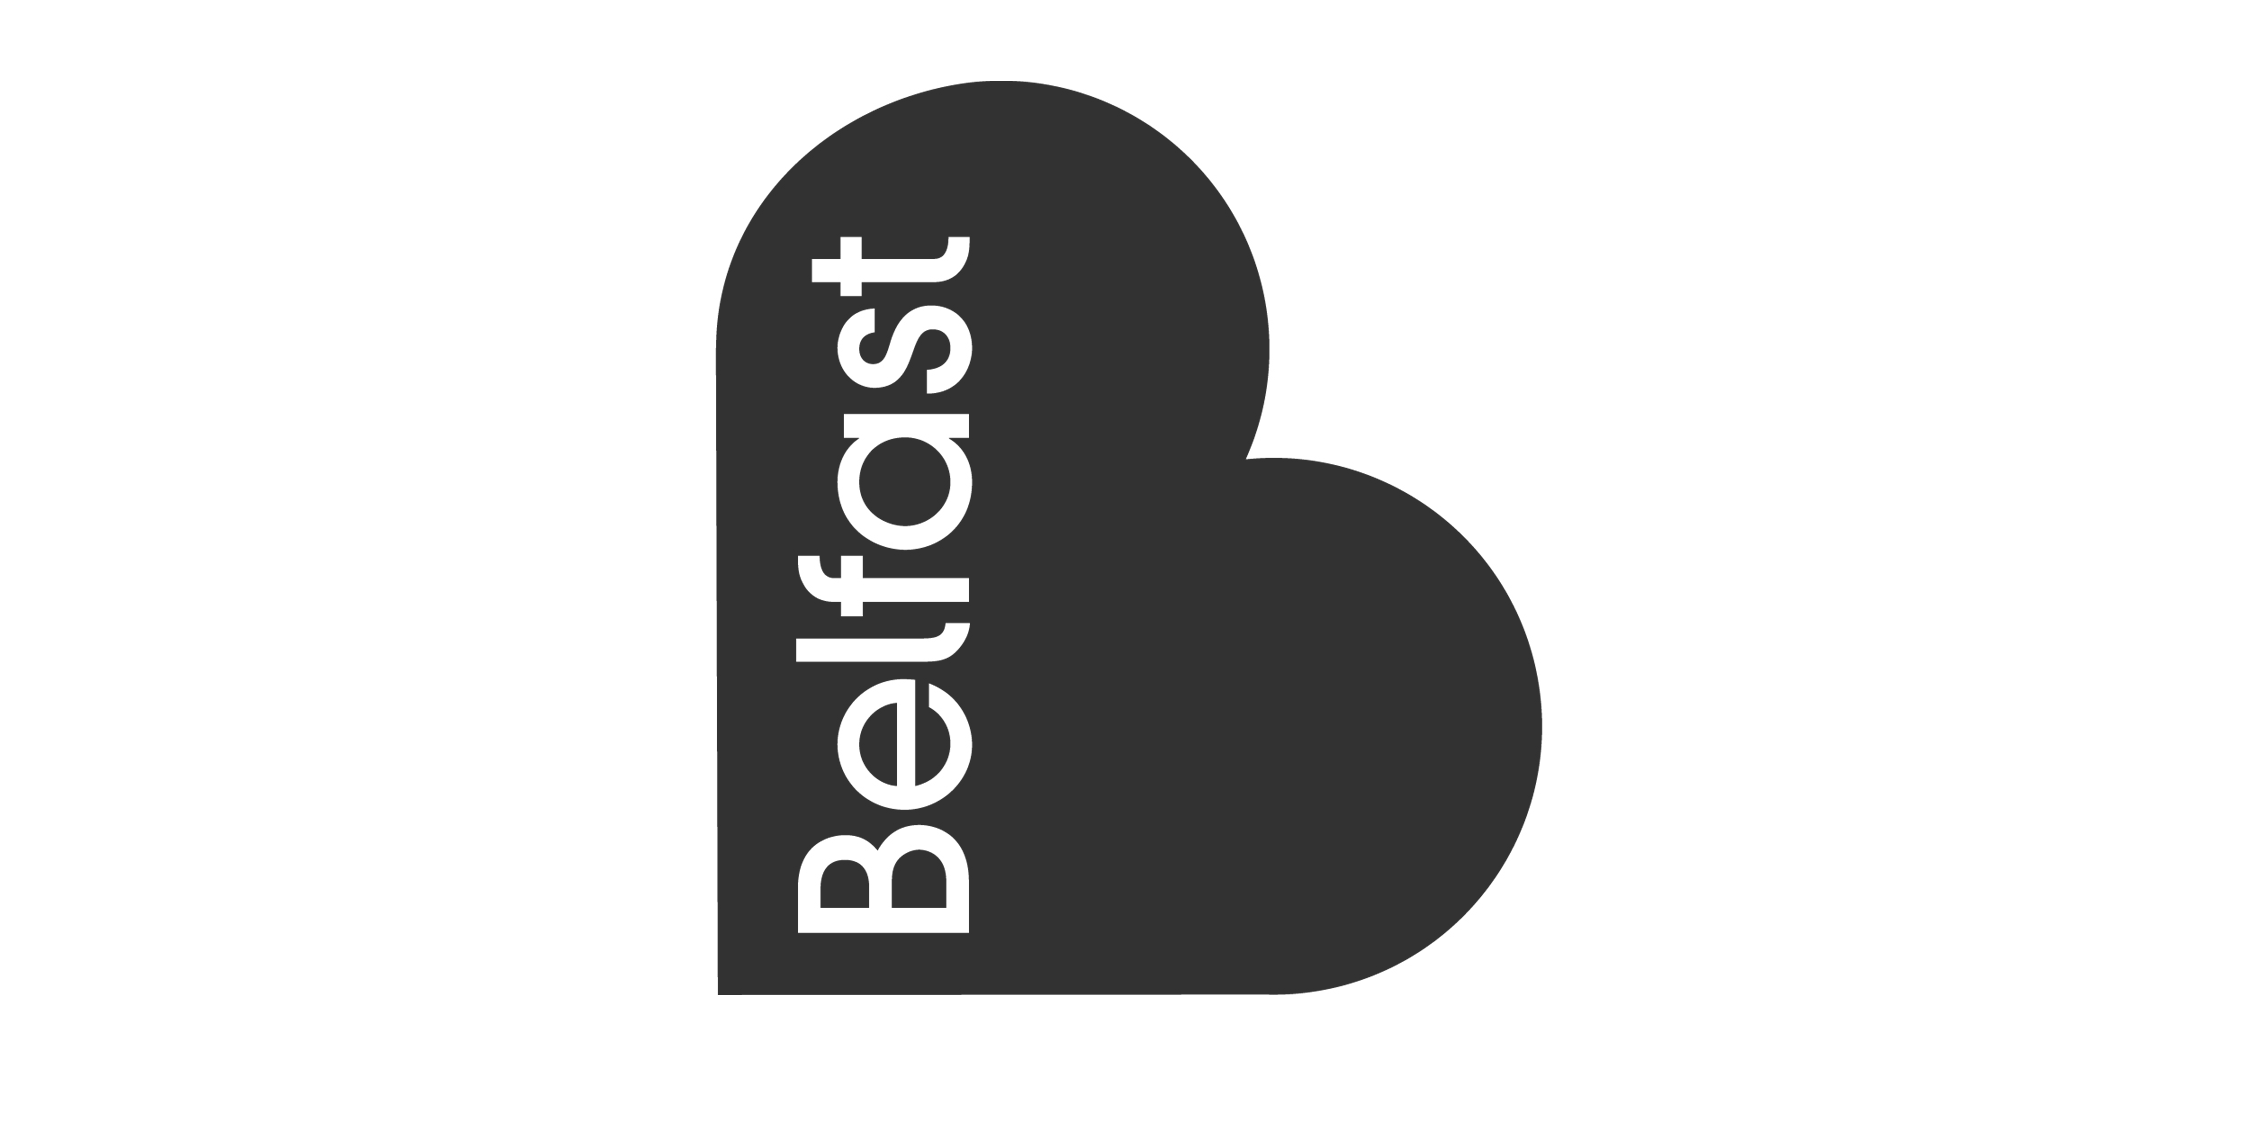 The City of Belfast logo